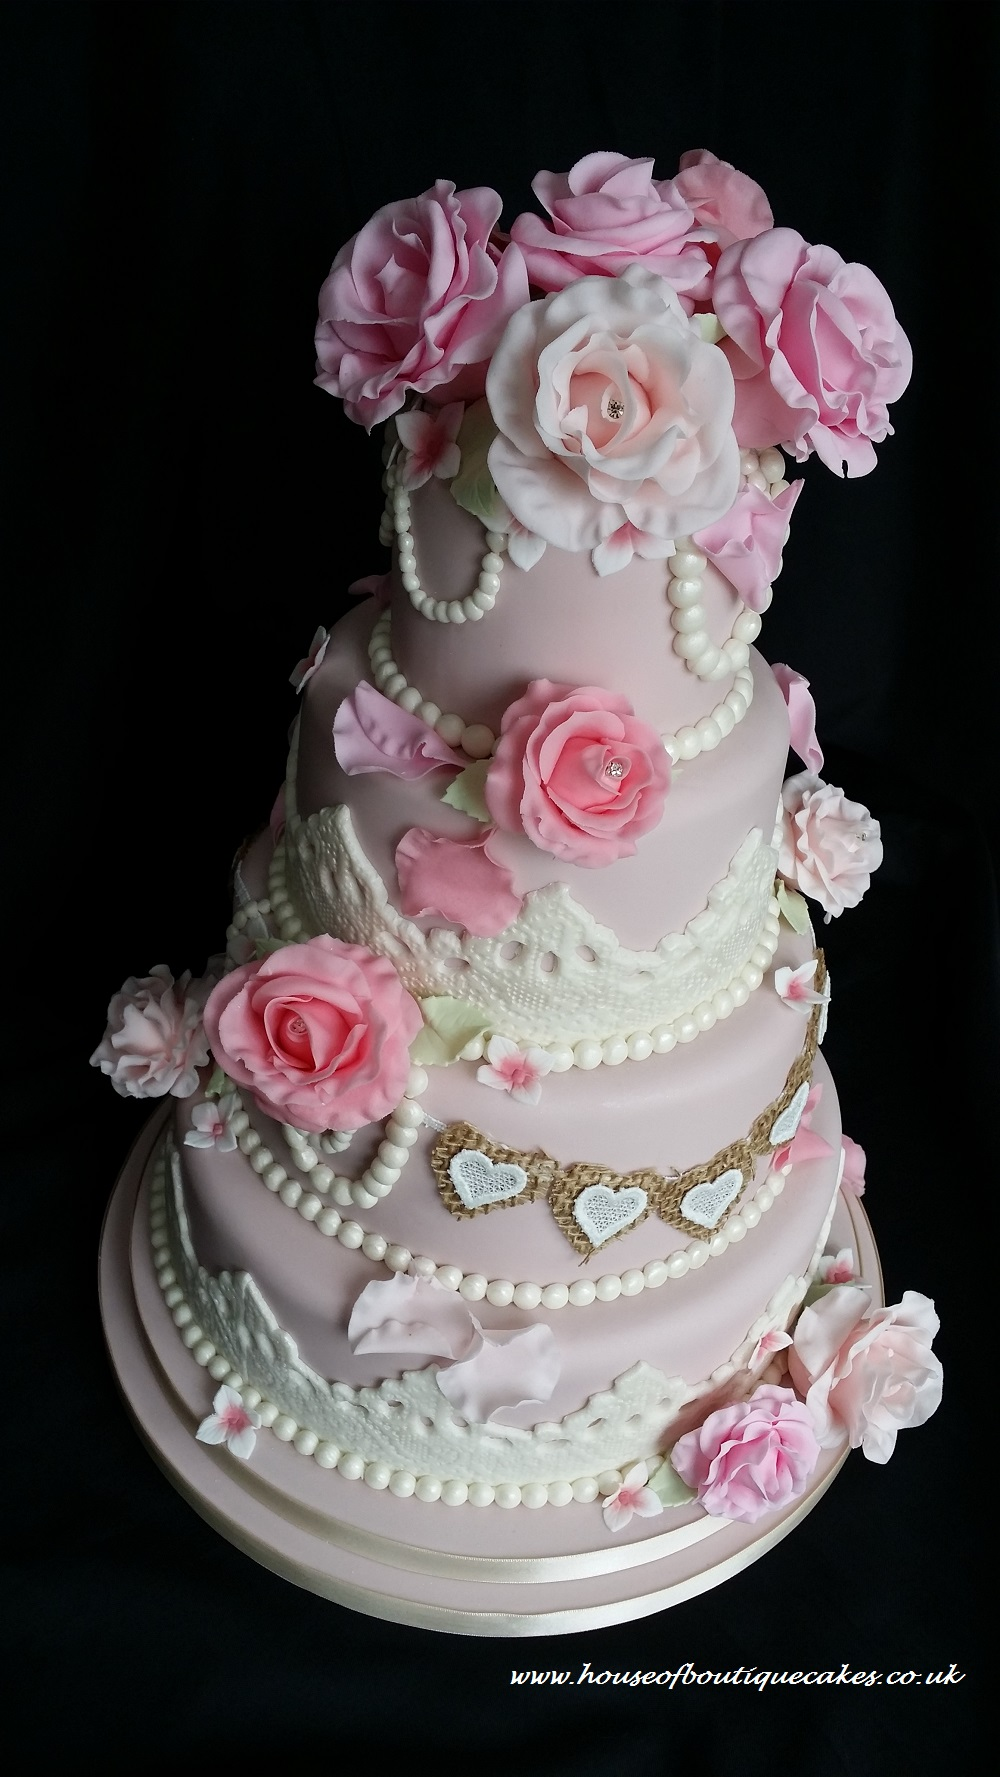 Wedding House Of Boutique Cakes